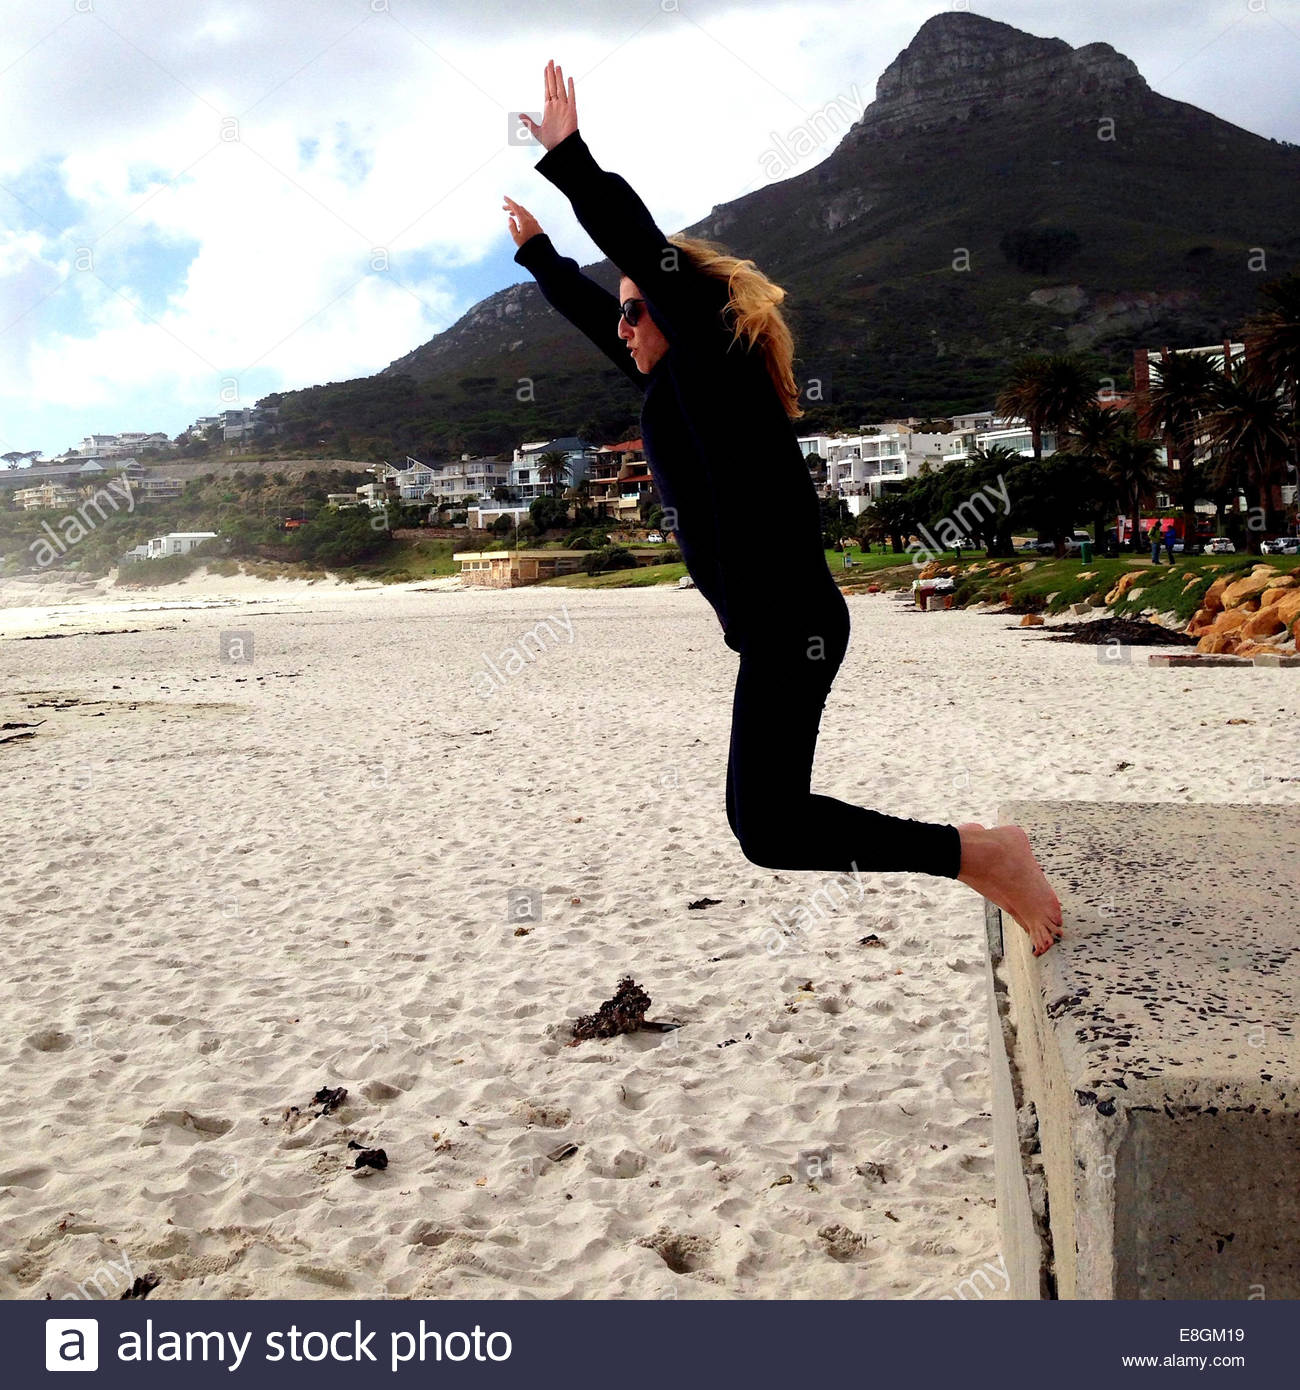 Woman jumping onto sand at beach - Stock Image